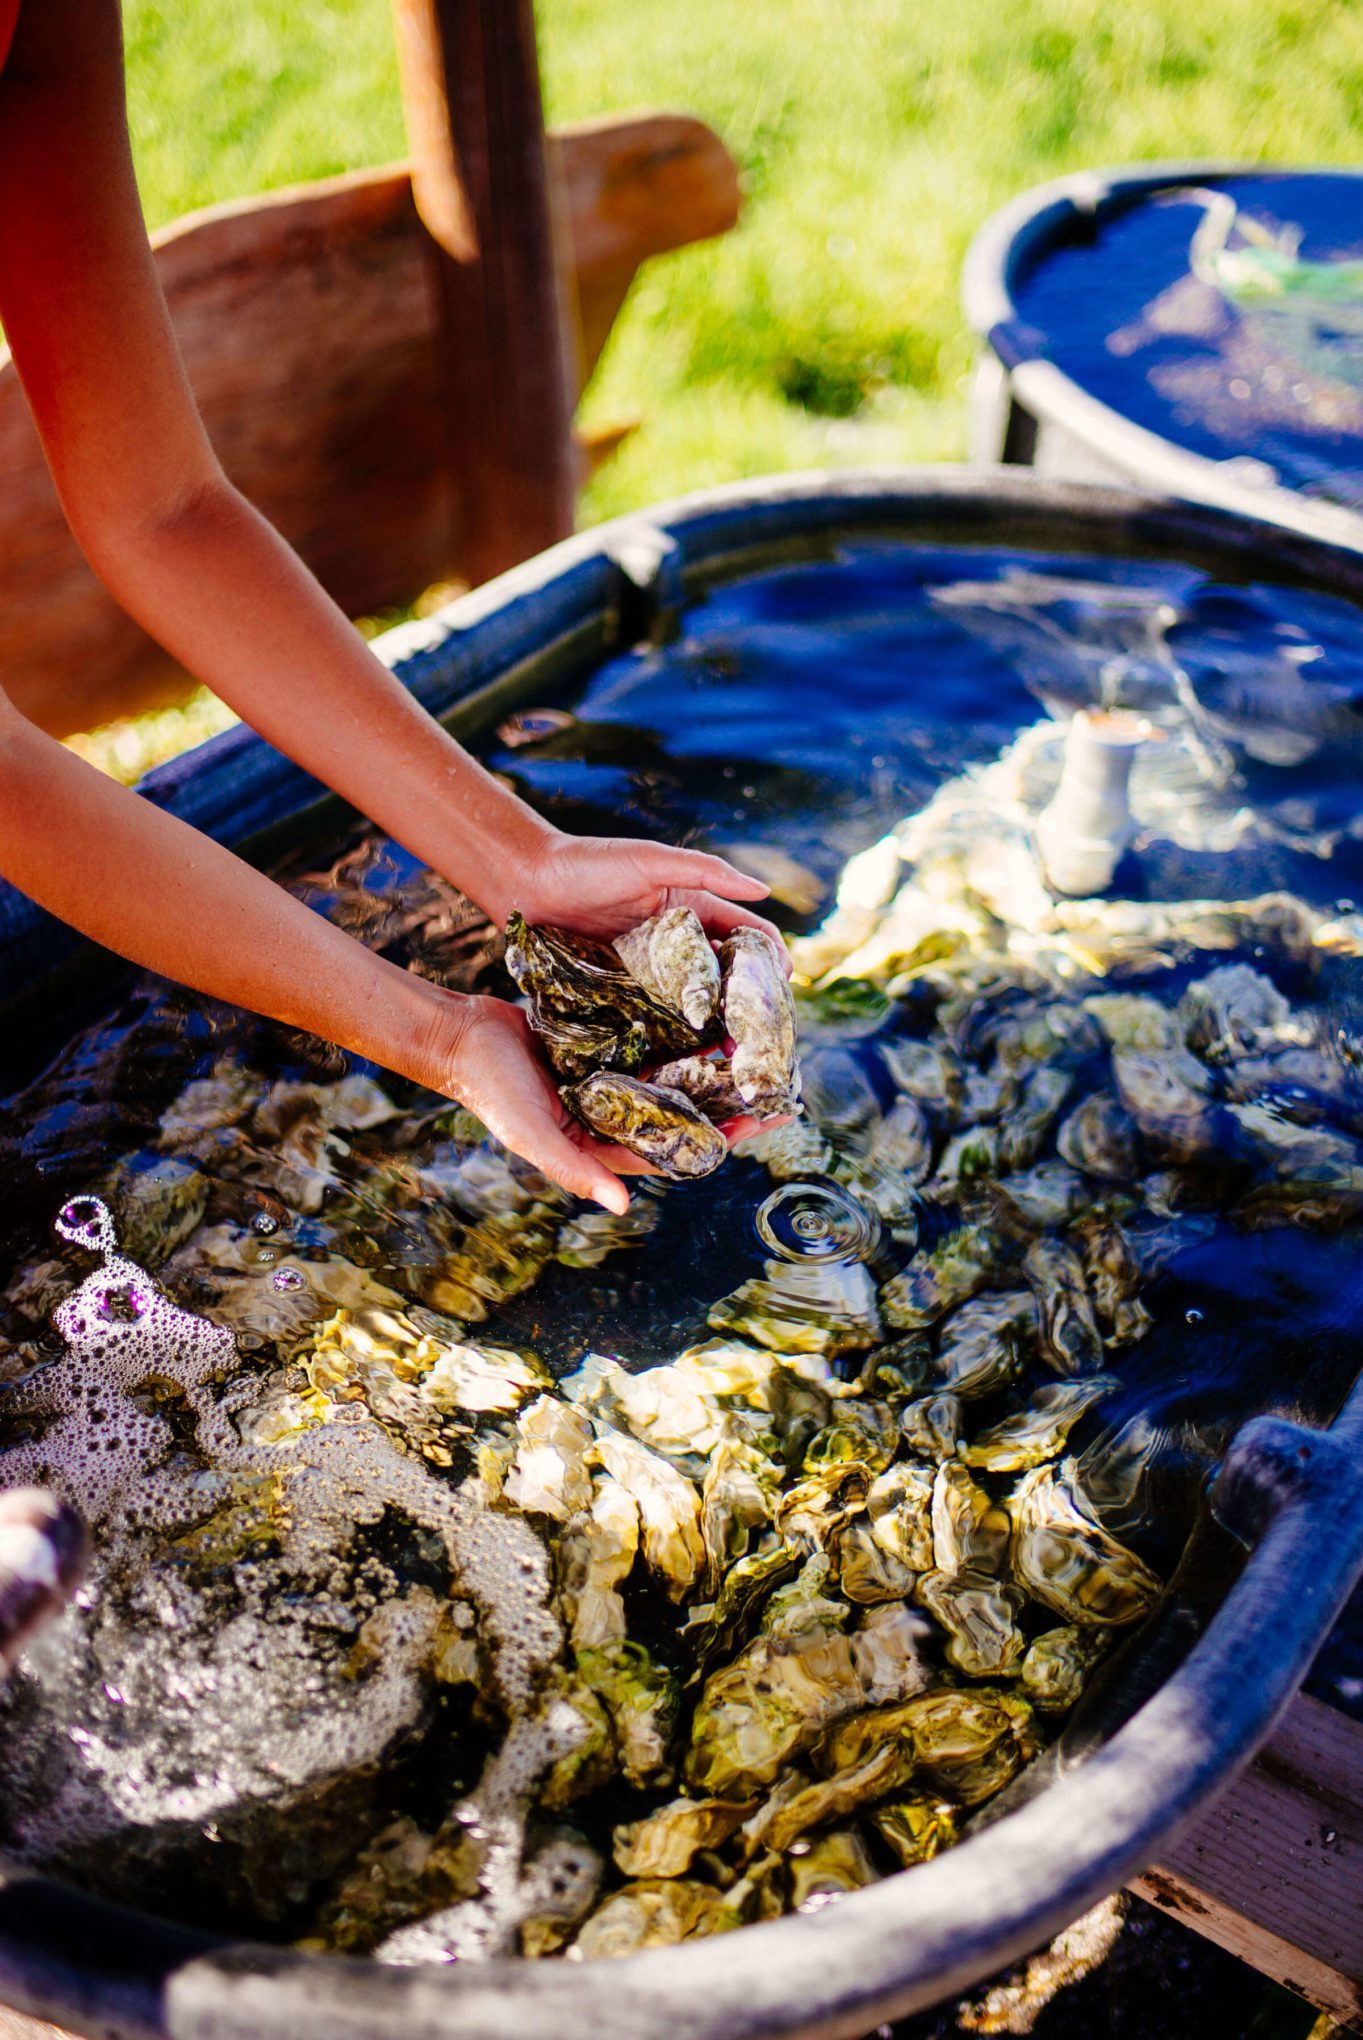 The Four Seasons Hualalai raising their own oysters to serve at their restaurants in Kona Hawaii, The Taste SF